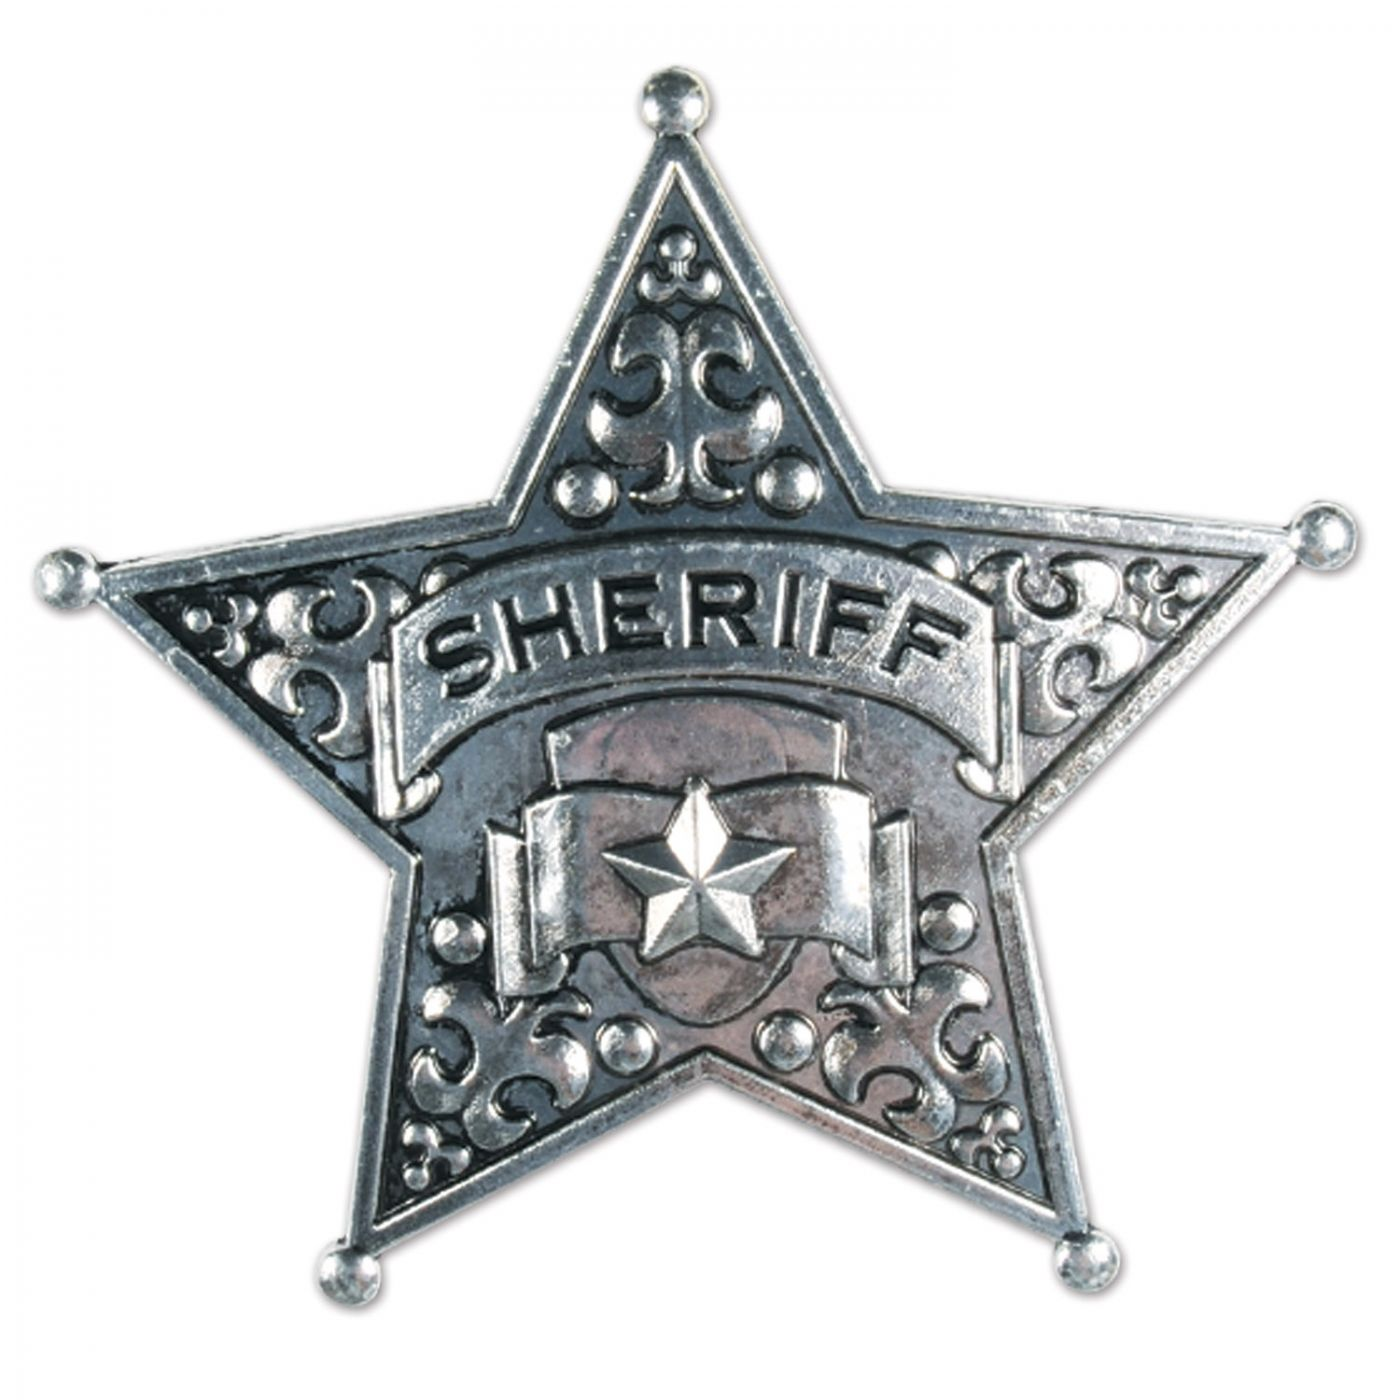 Metal Sheriff Badge image